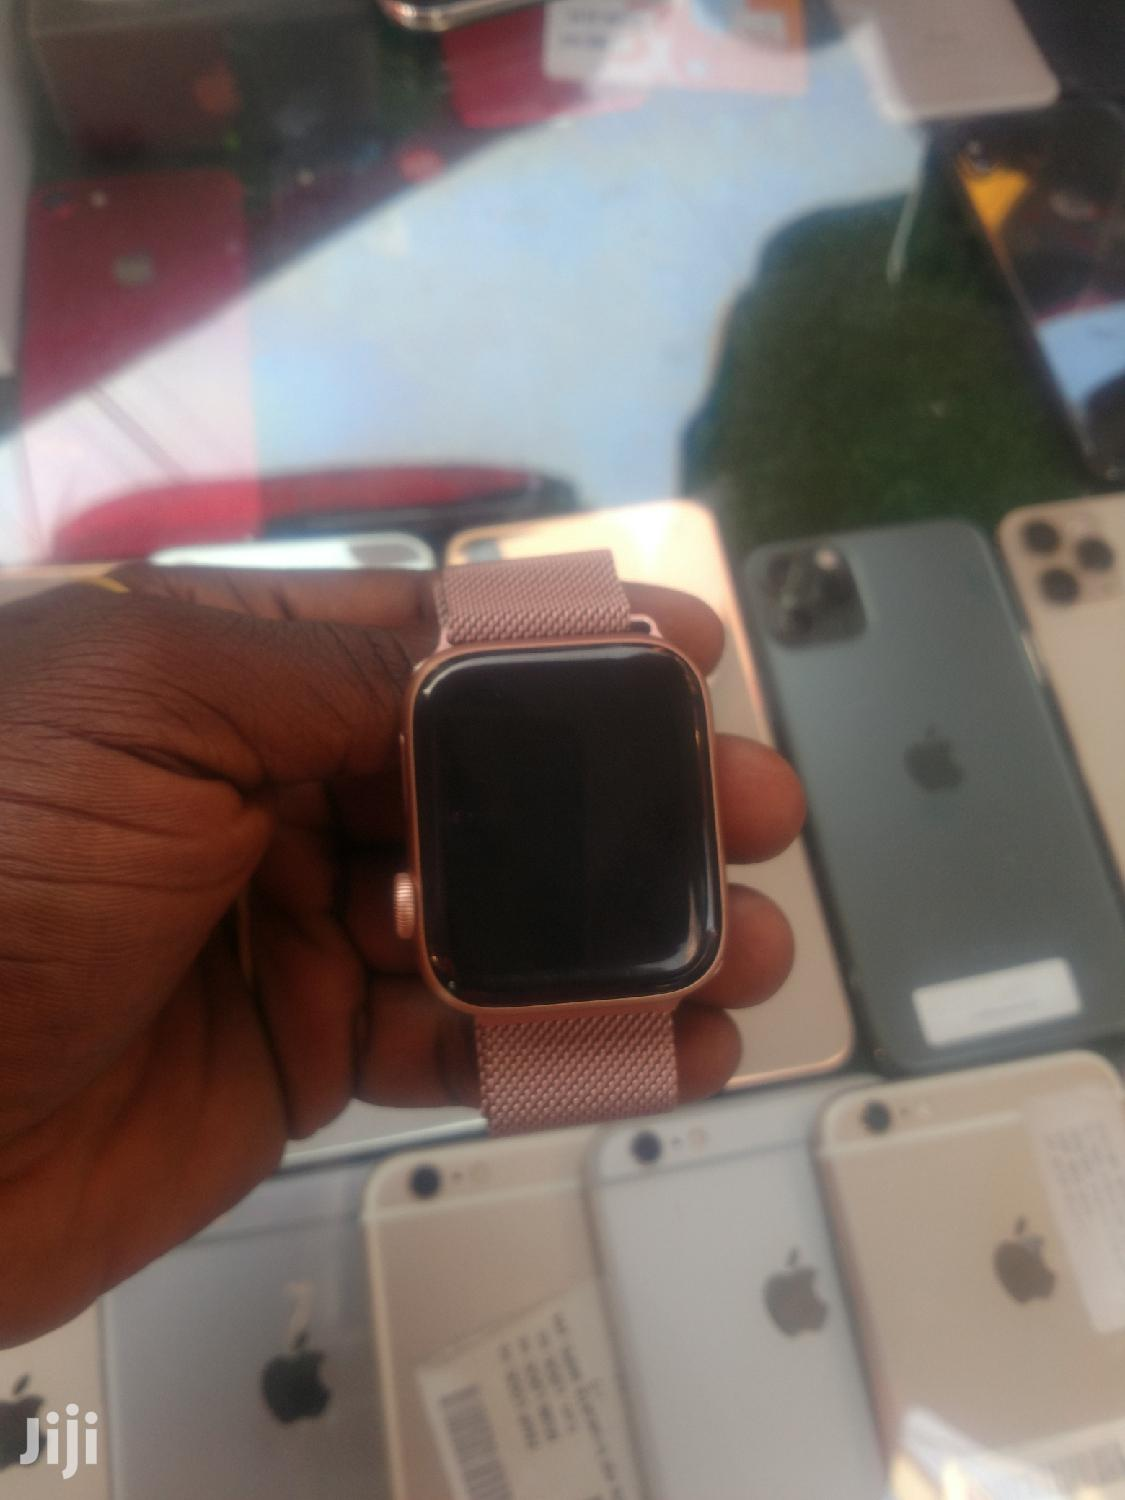 Iwatch Series 5 44mm GPS Cellular | Smart Watches & Trackers for sale in Achimota, Greater Accra, Ghana